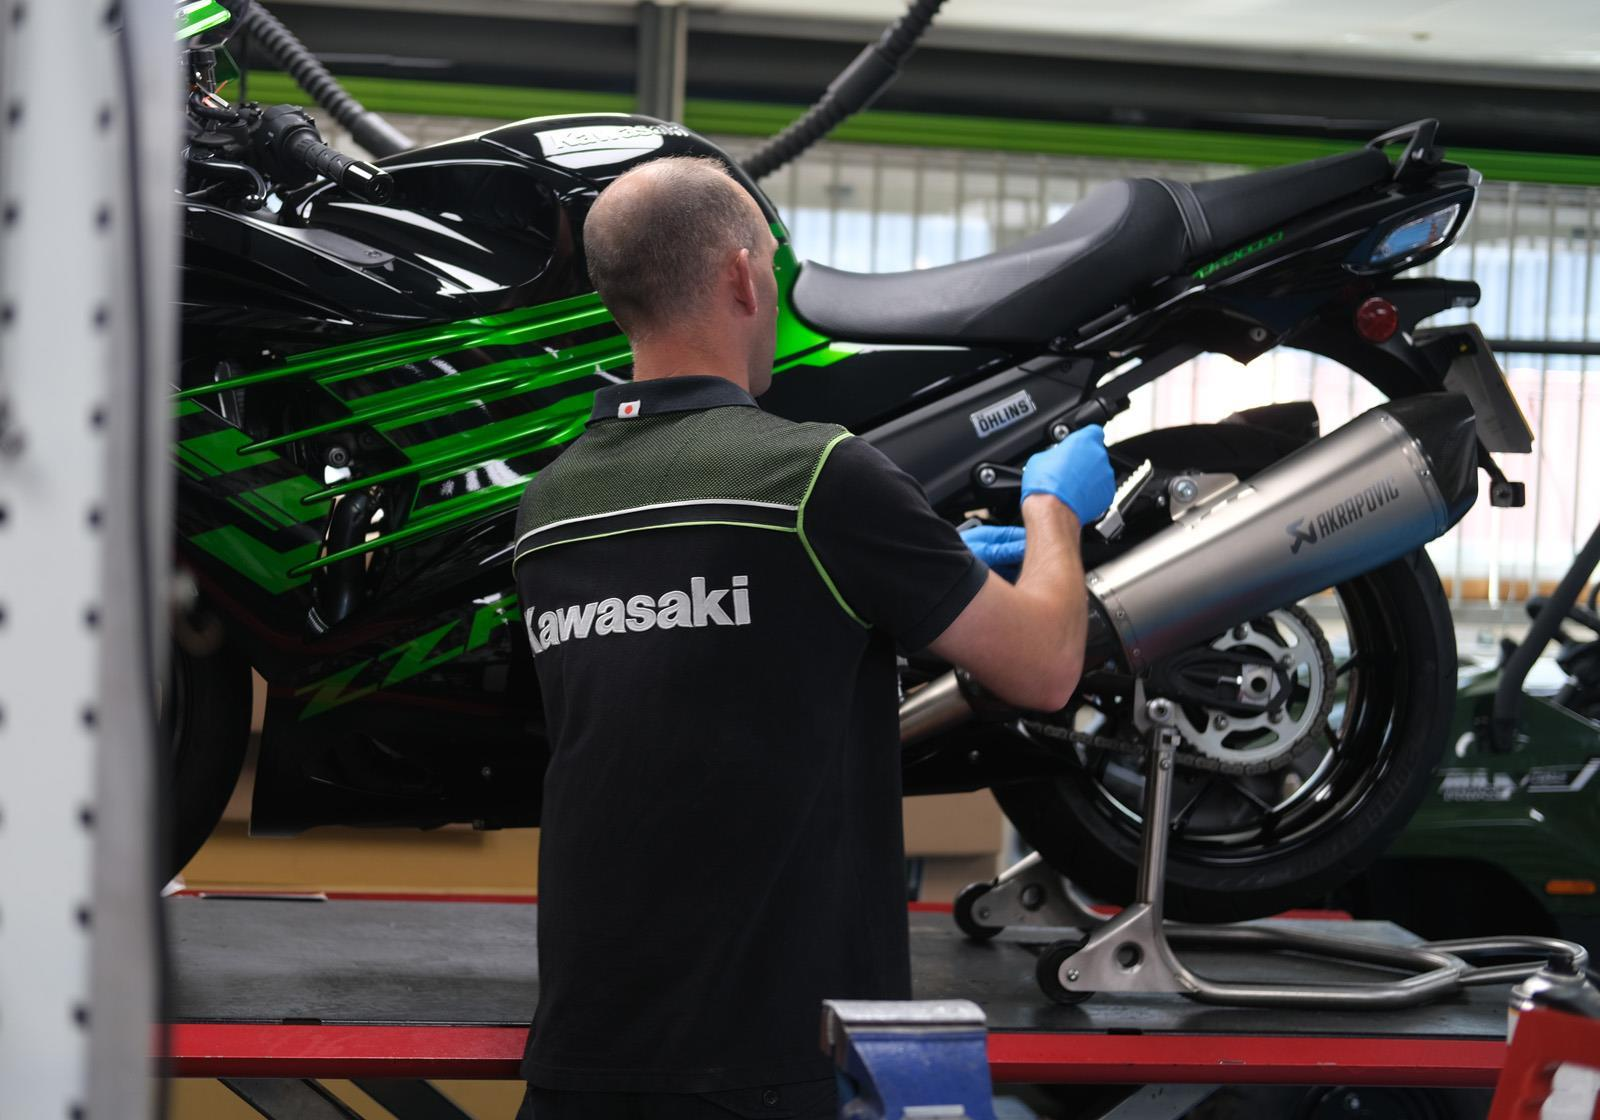 Maintenance Tips to Keep Your Bike Road Ready